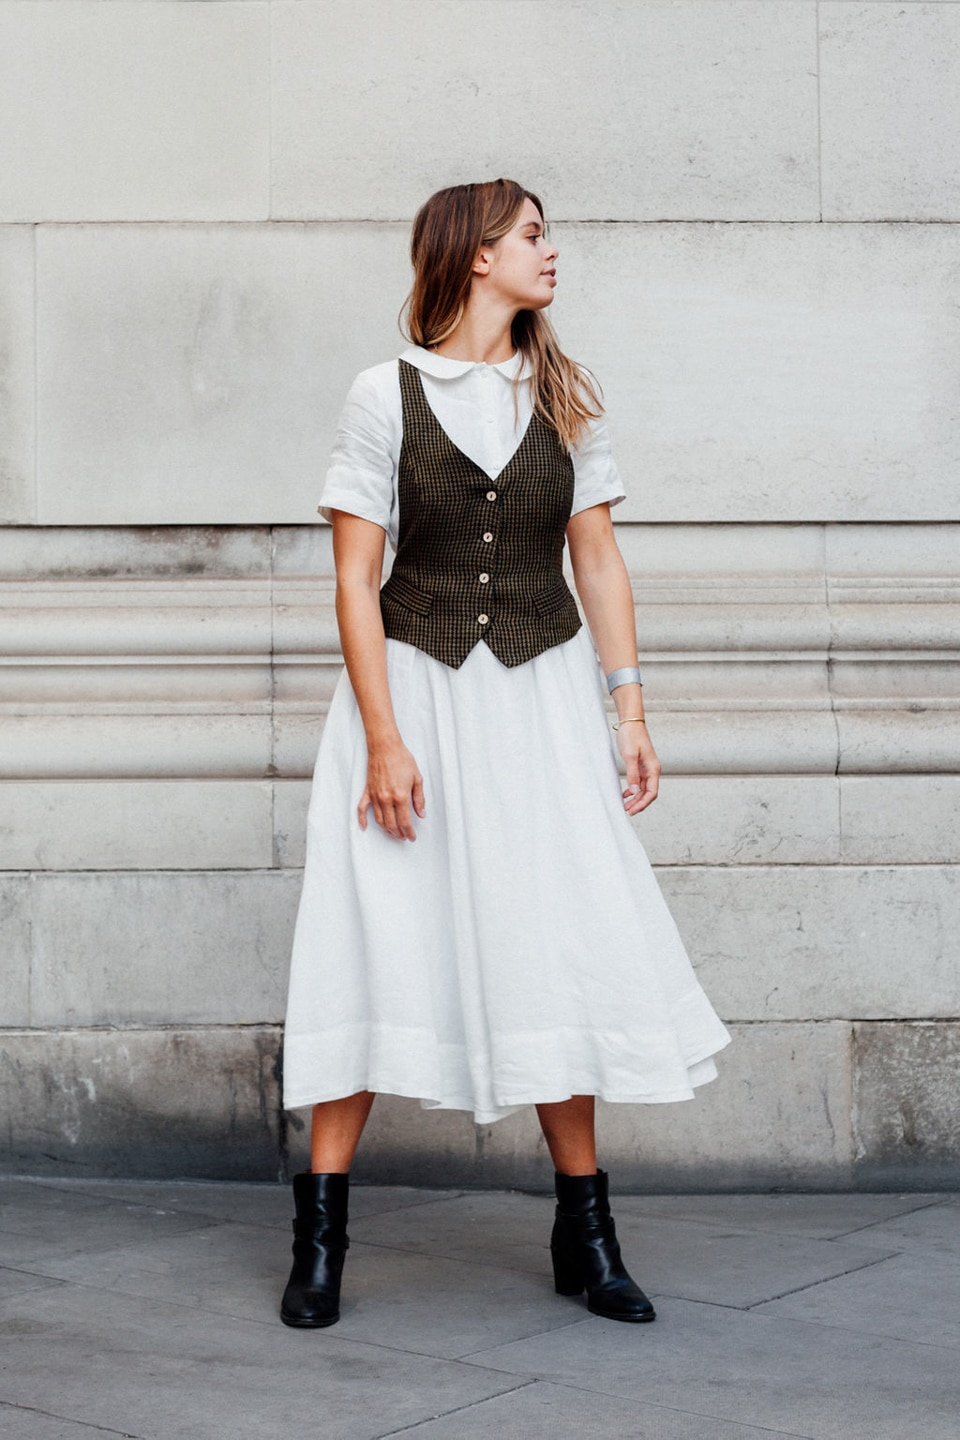 Jil wears white dress with waistcoat